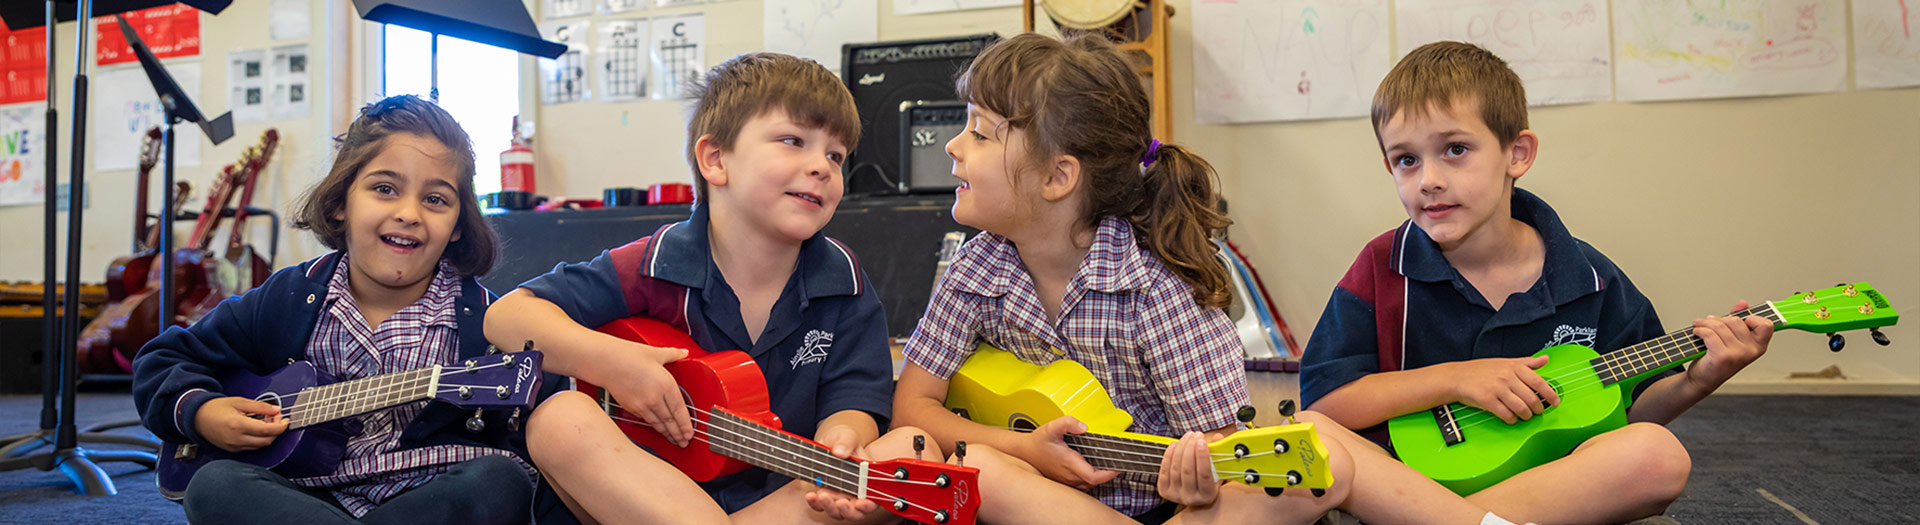 primary school students in music class playing ukuleles